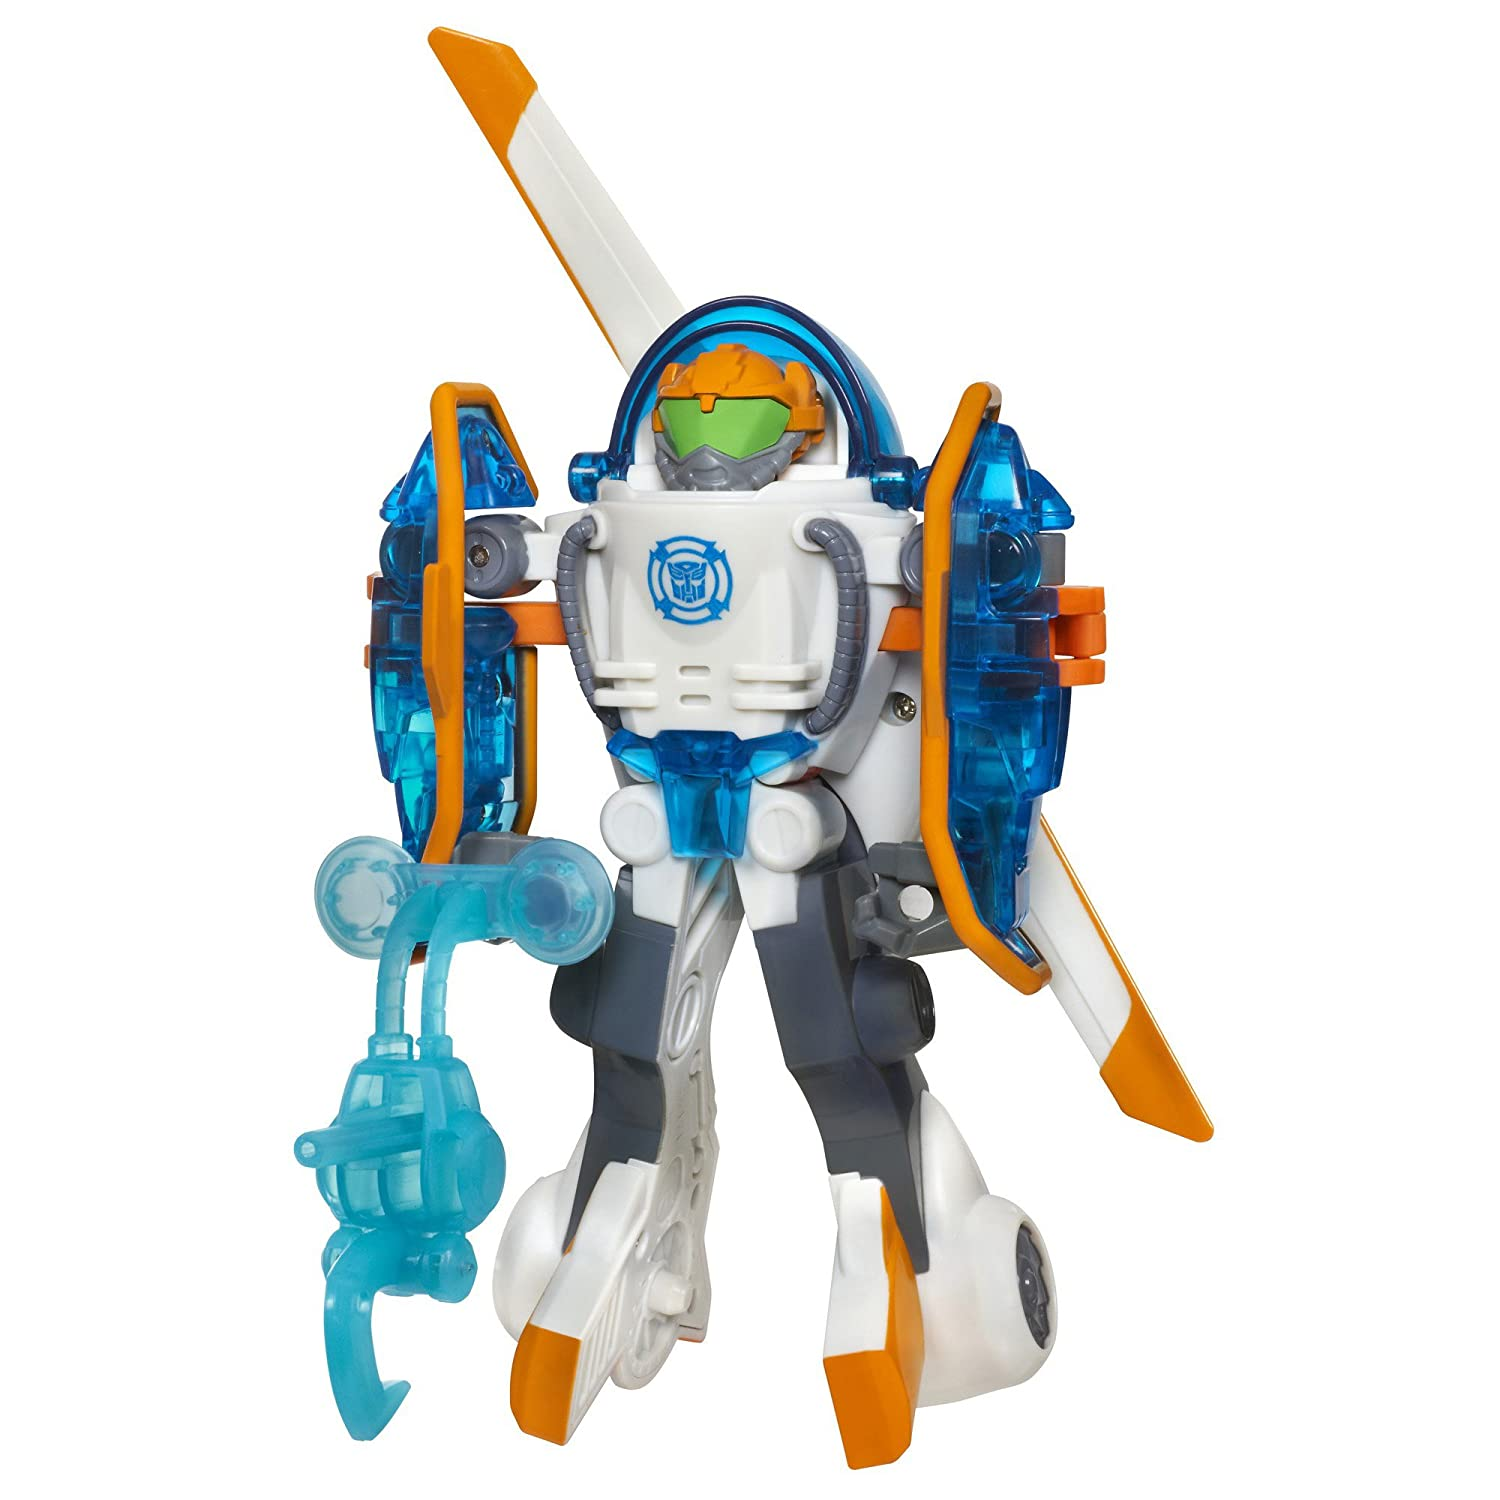 Transformers Playskool Heroes Rescue Bots Blades the Copter-Bot Figure (Amazon Exclusive) Hasbro - Import A2770F01